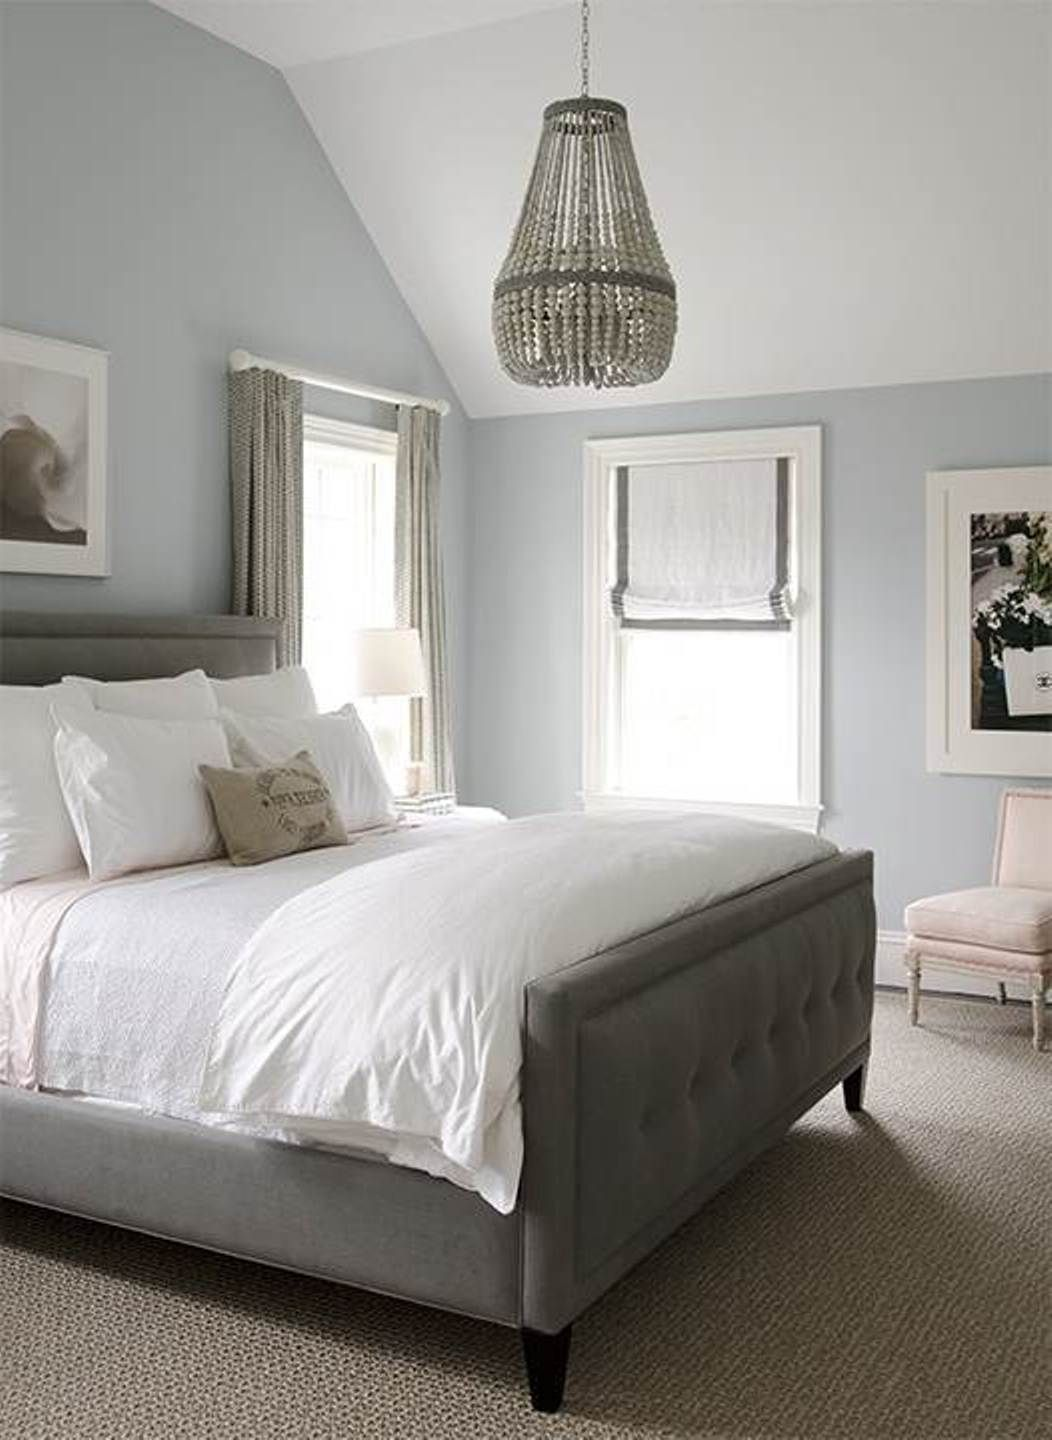 Love the grey cute master bedroom ideas on a budget decorating master bedroom ideas on a Master bedroom with grey furniture